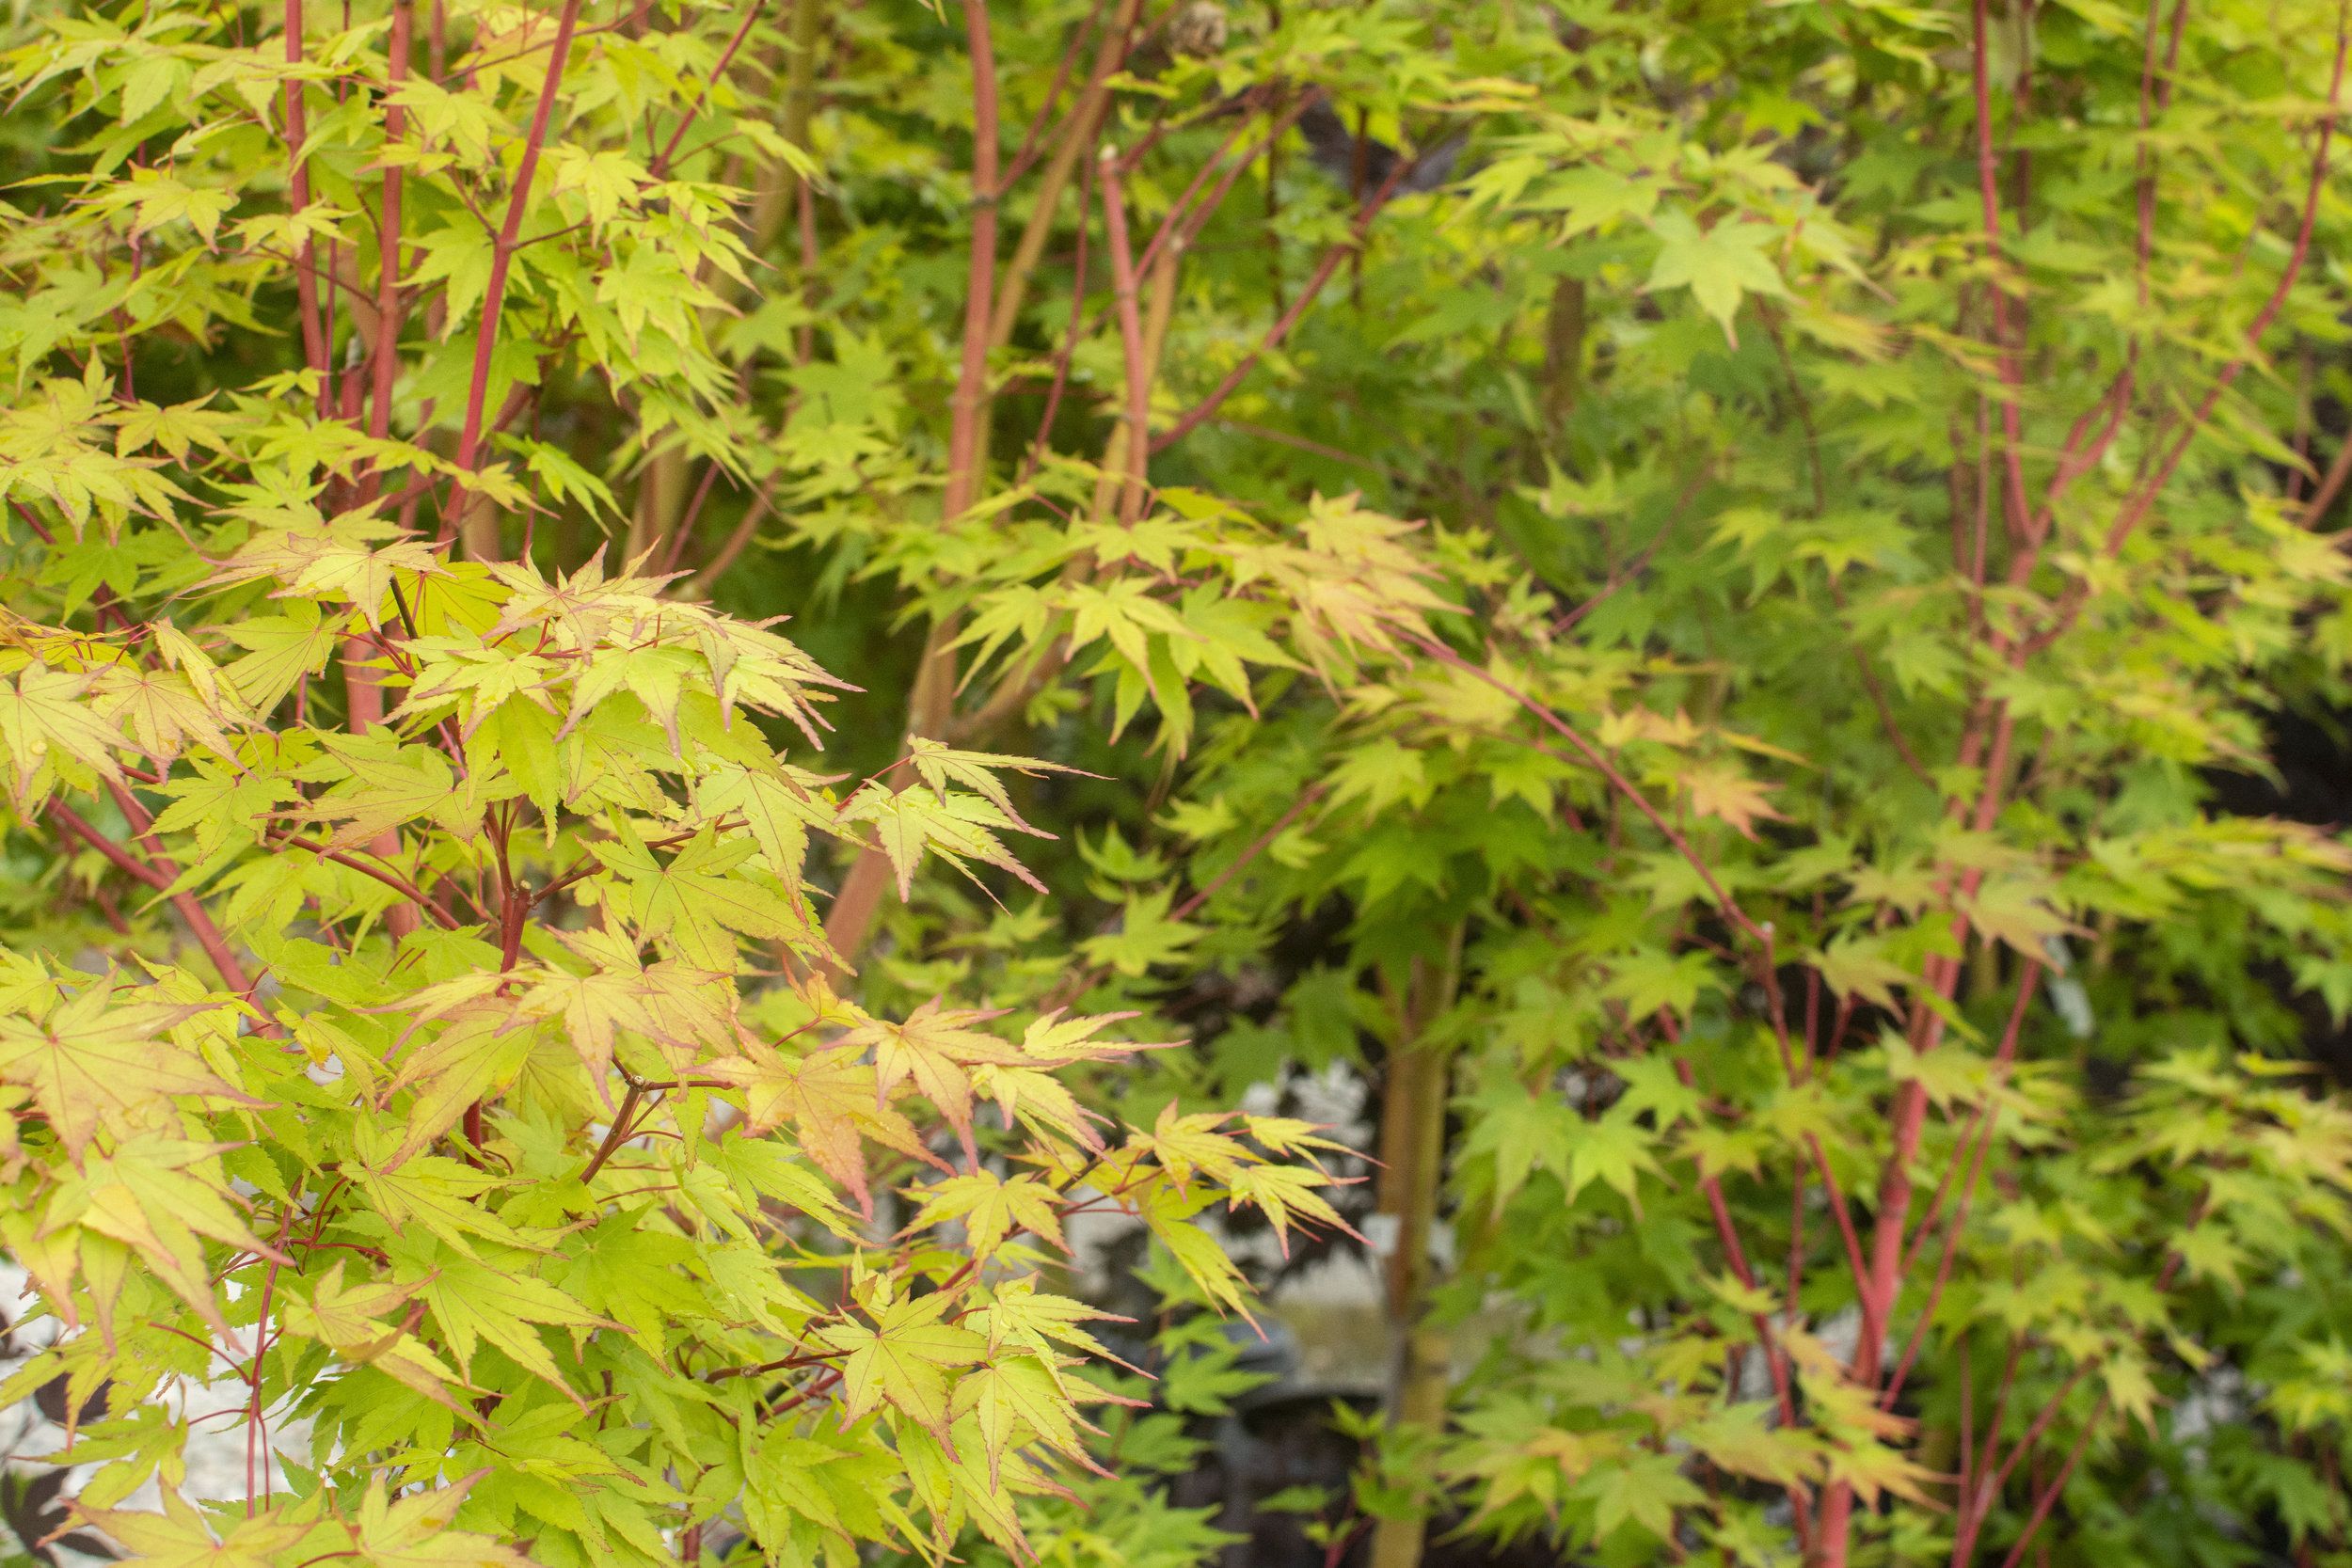 ACER p.'Beni Kawa' - Upright tree which grows easily in well drained soil. Loves full sun to part shade. Known for its salmon-red bark. Leaves green in spring and summer and golden-yellow in autumn.Mature size: 12-15' height and spread